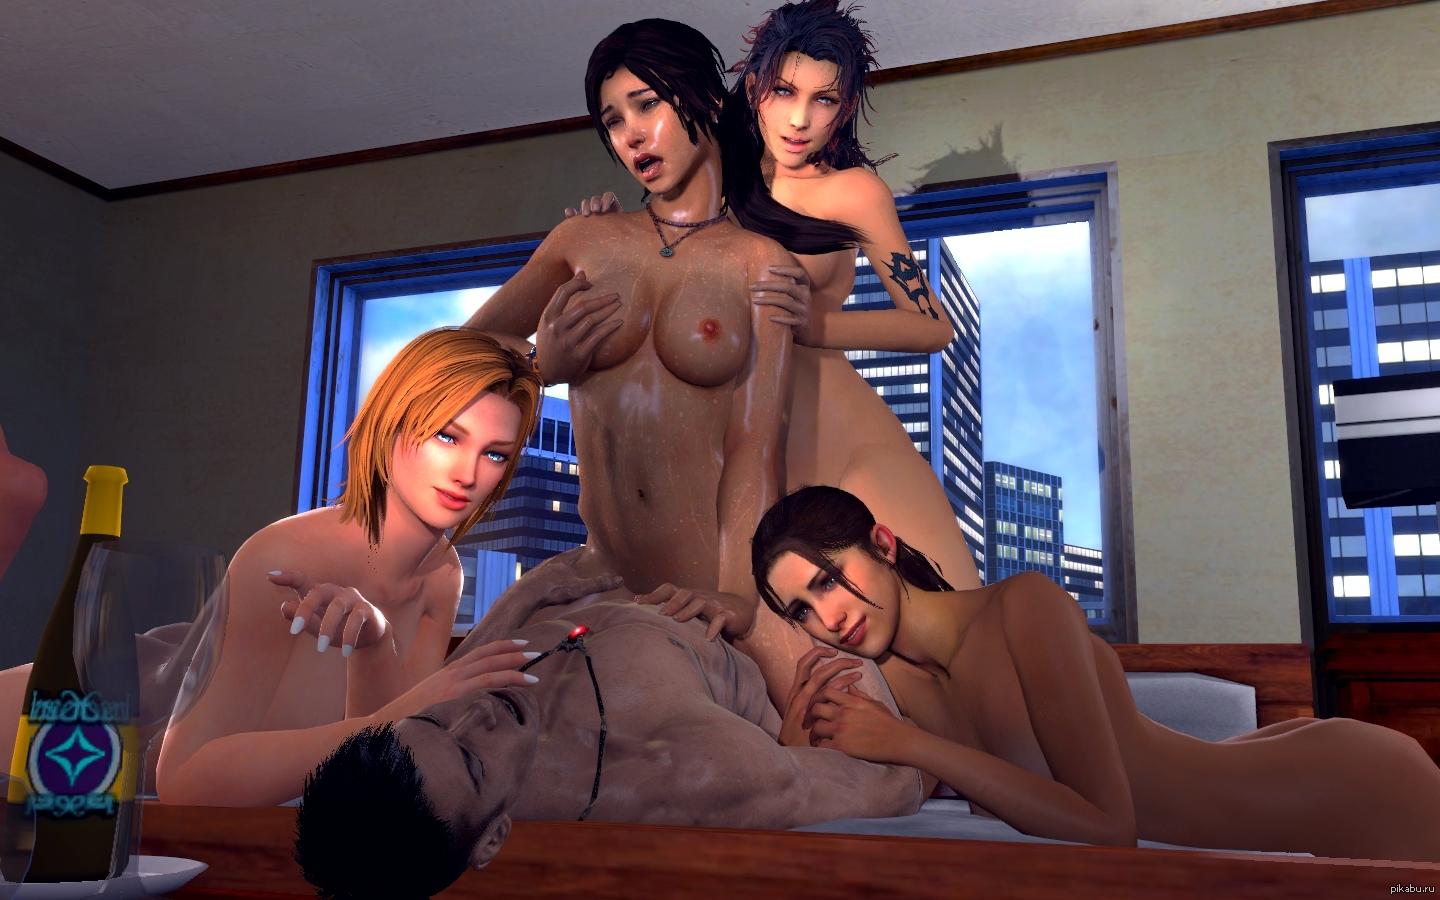 3dgirlssexgame exposed pic